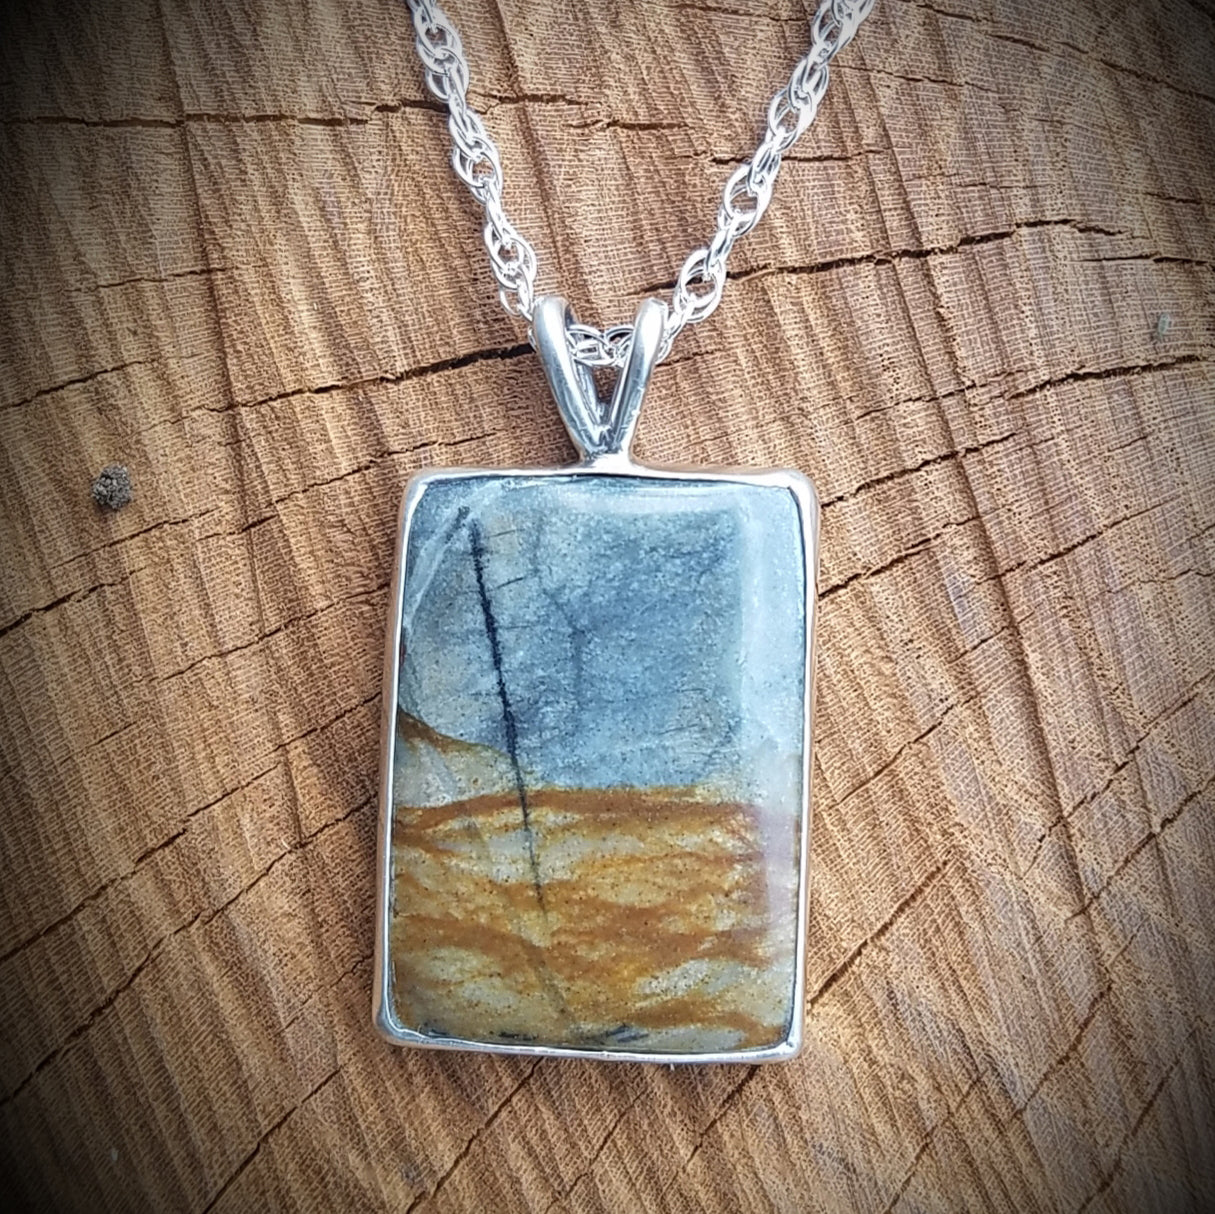 Ely Knives and Silver Landscape Gemstone Necklace; set in sterling silver with an 18-inch box chain.